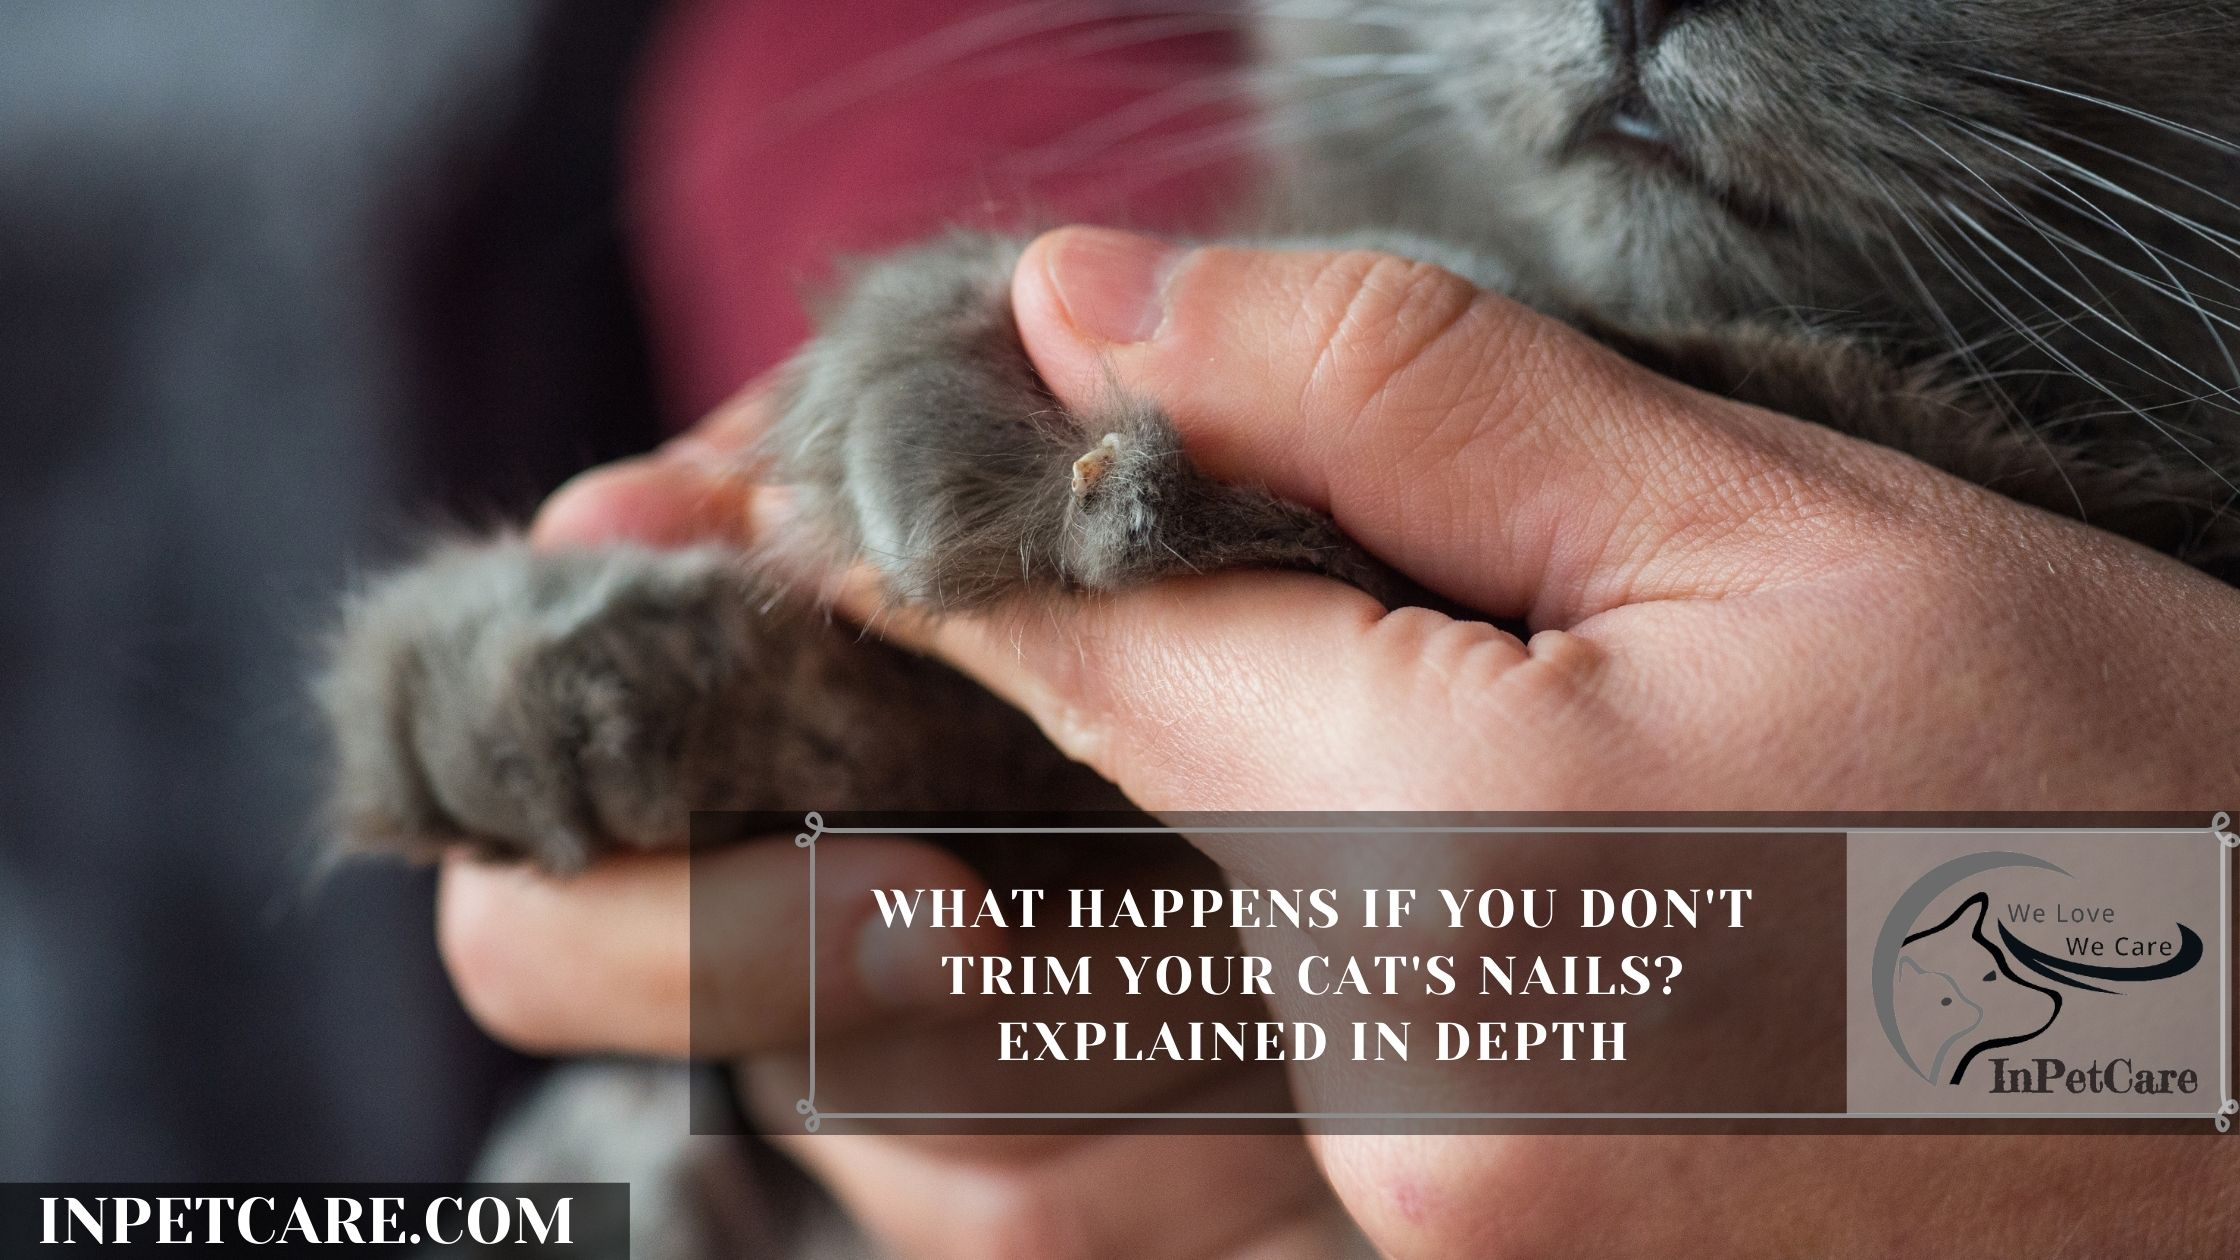 What Happens If You Don't Trim Your Cat's Nails? Explained In Depth